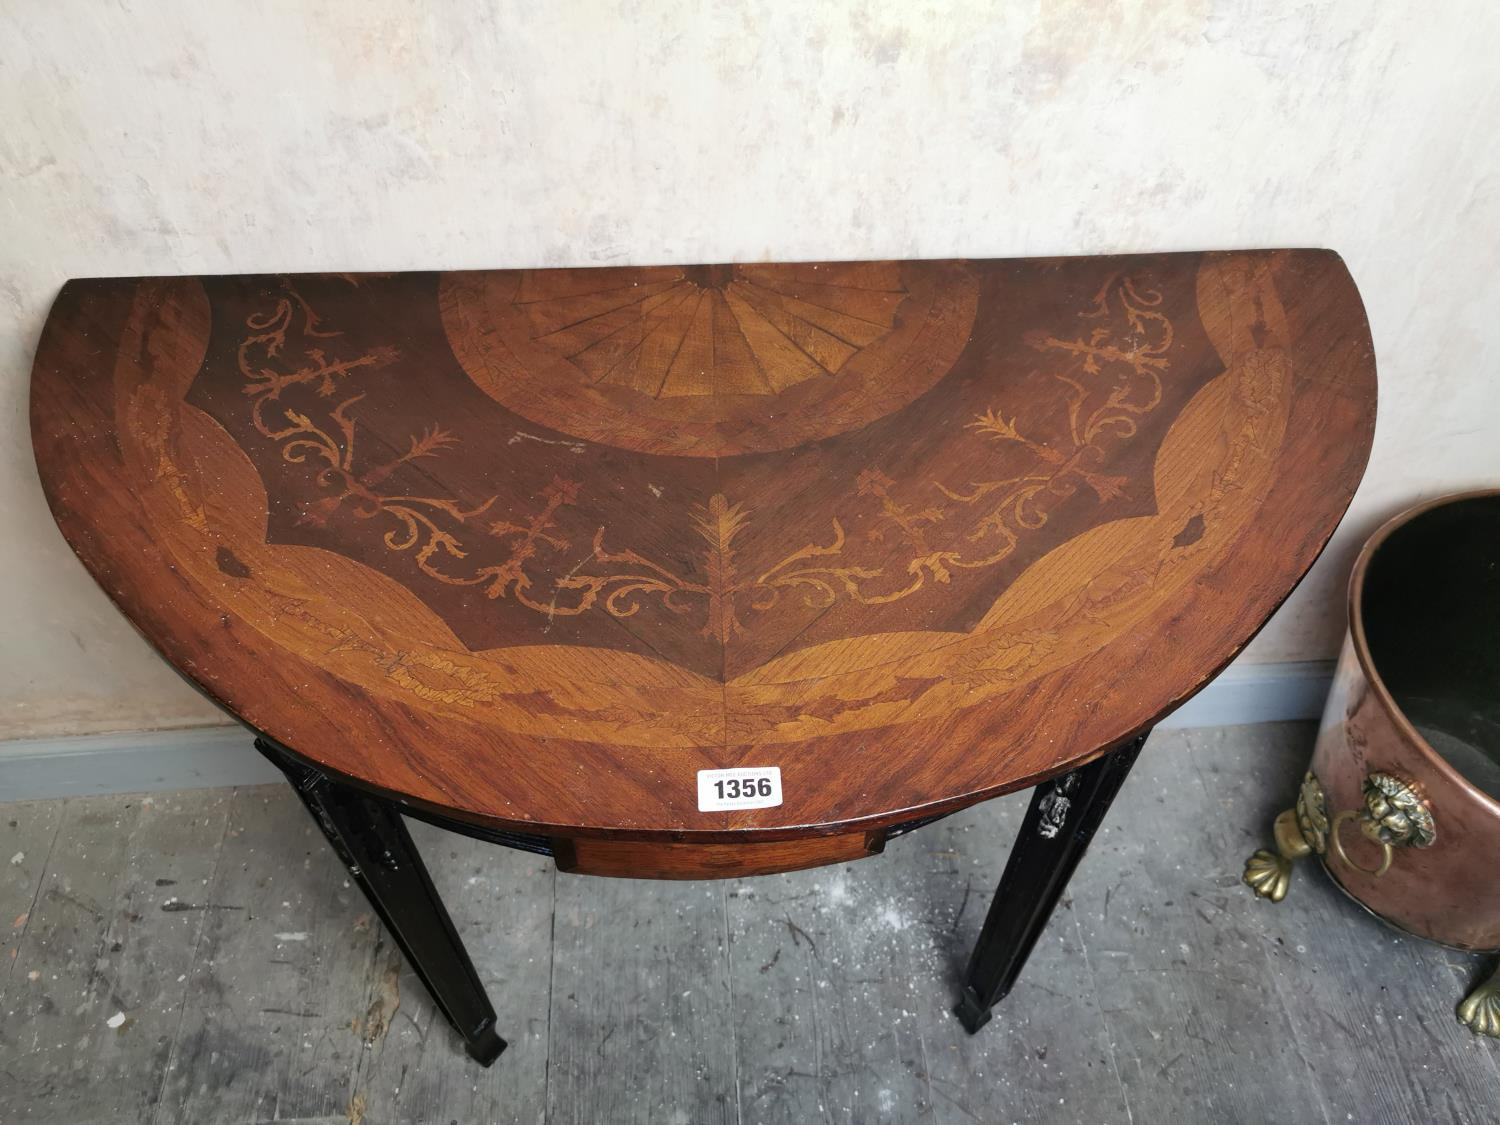 Pair of 19th C. mahogany and satinwood inlaid demi-lune tables - Image 2 of 4